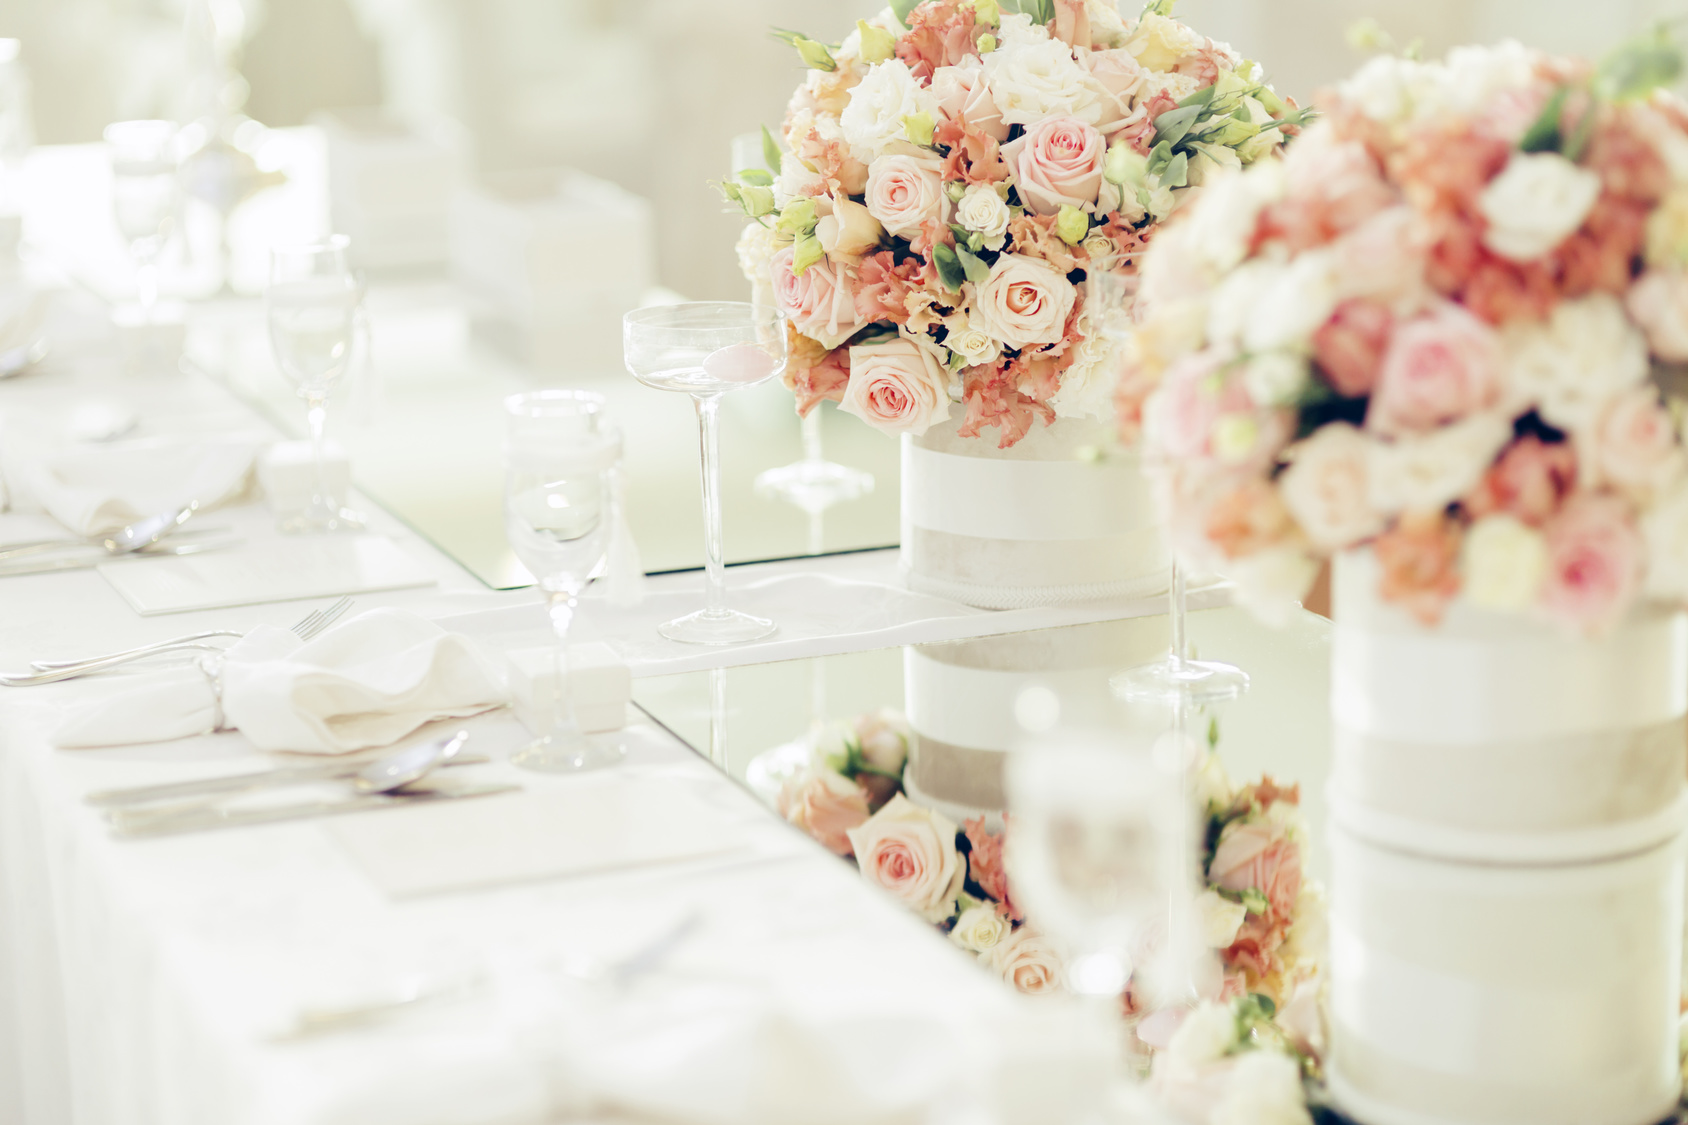 Table settings with centerpieces